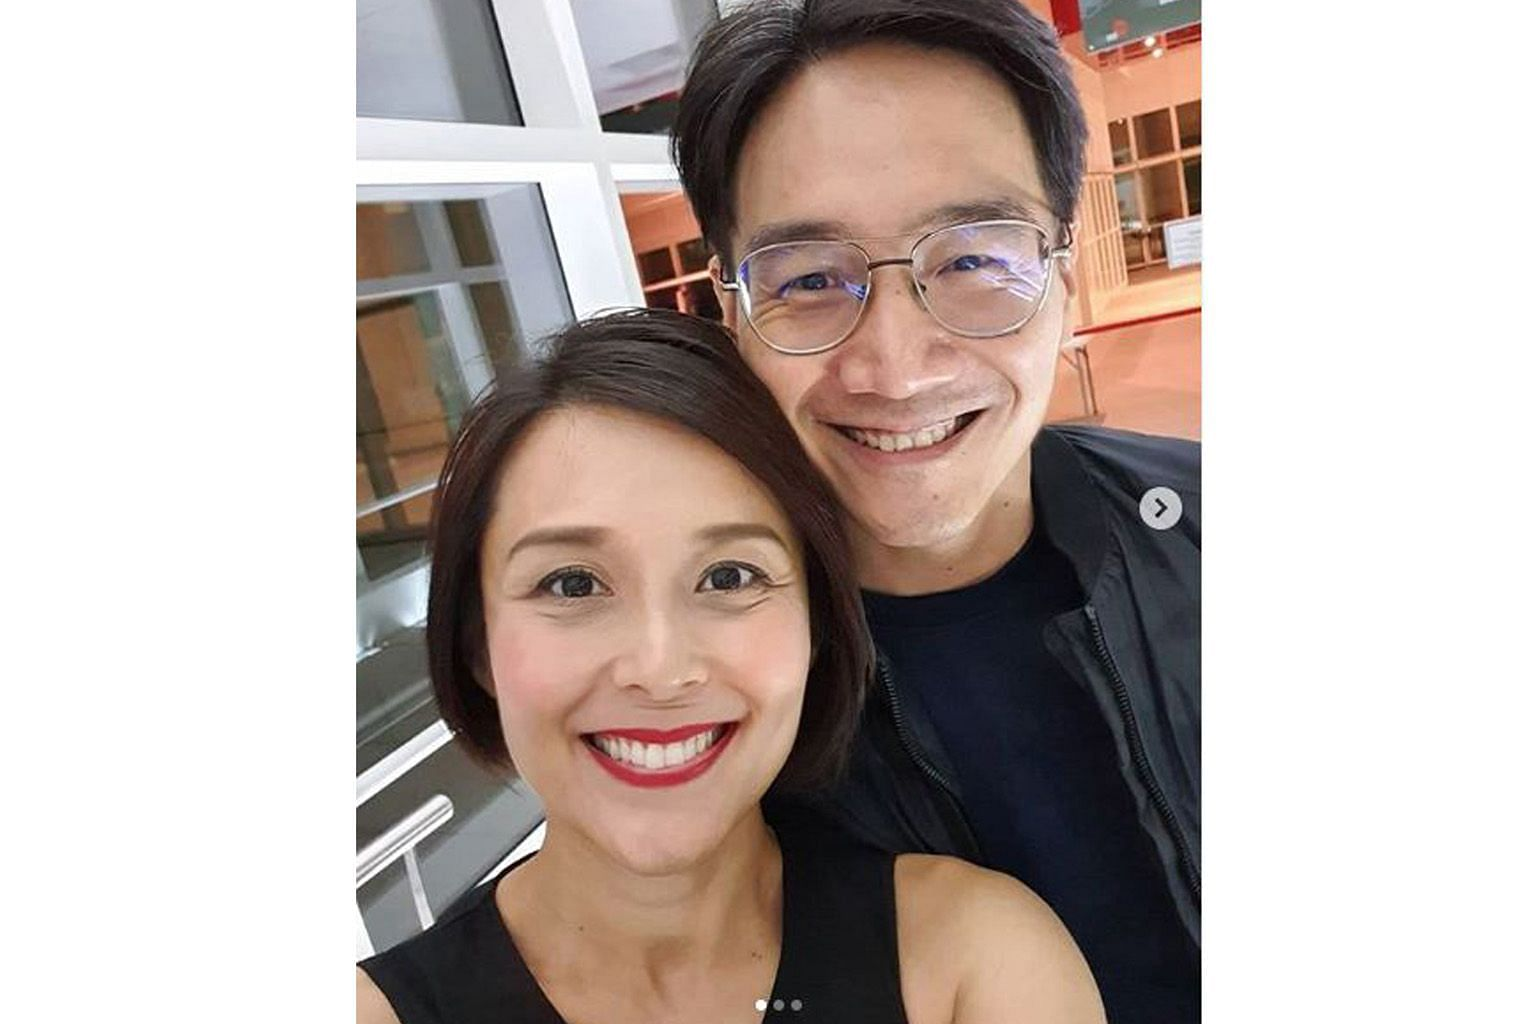 Priscelia Chan has fully recovered from her skin condition and is looking forward to celebrating her 12th wedding anniversary with husband Alan Tern (both left).